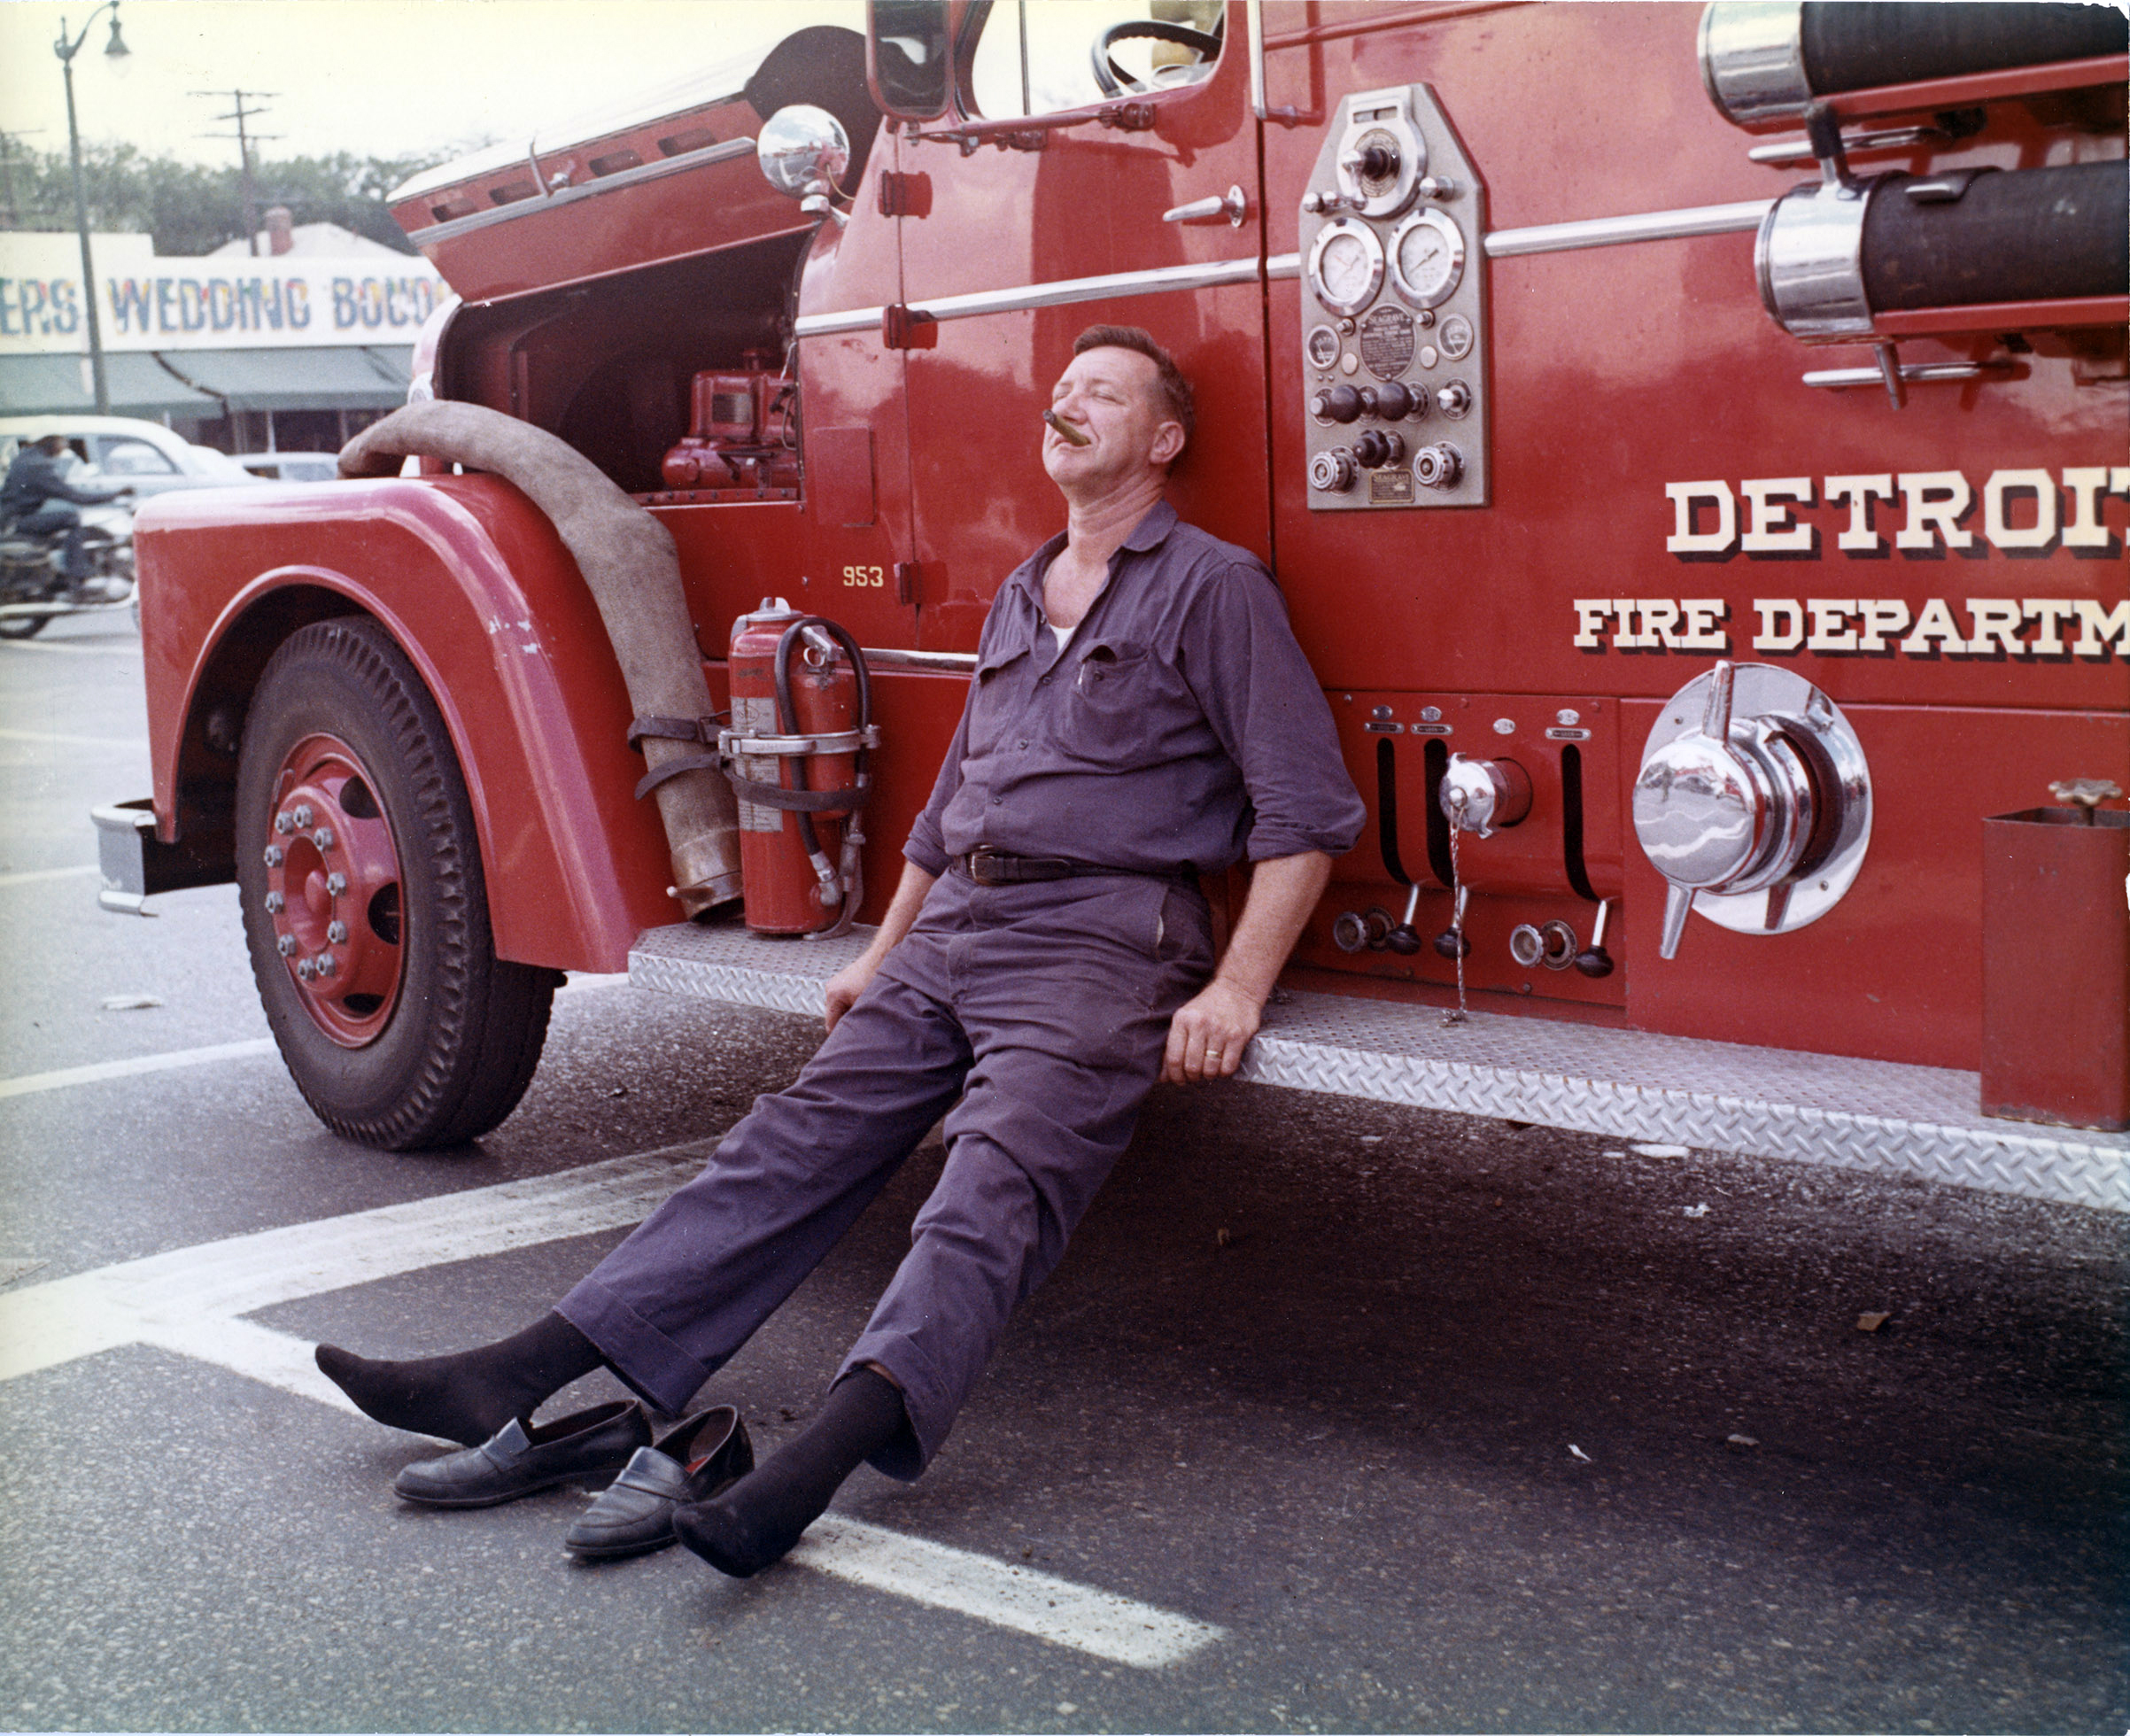 A Detroit firefighter collapses against the side of a department vehicle after battling one of the 1,609 structures that were damaged in the city during the July '67 protests.